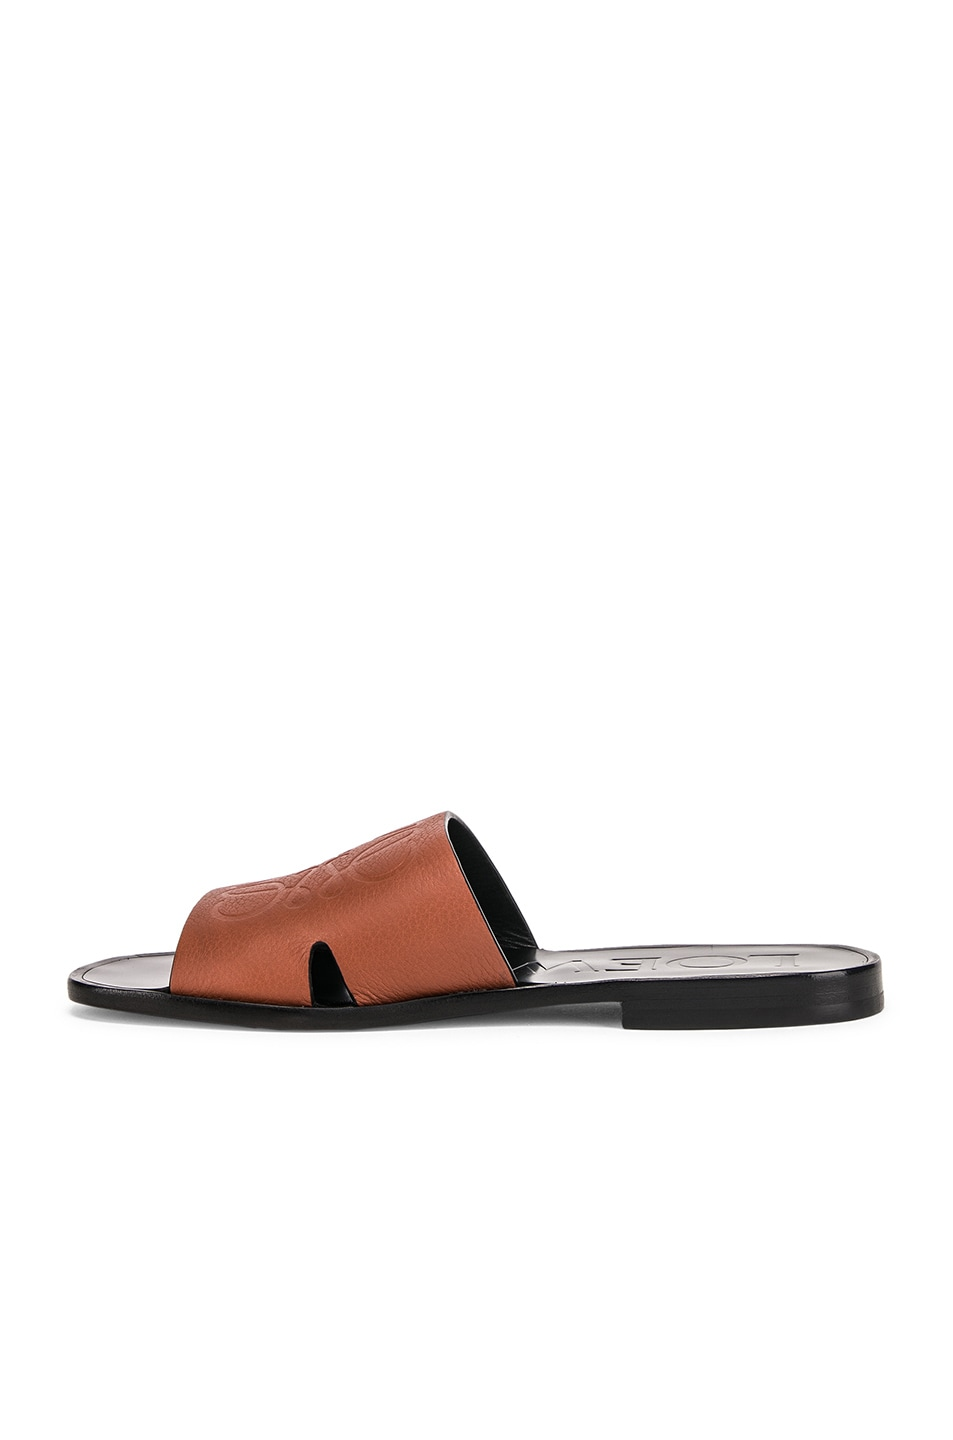 Image 5 of Loewe Anagram Mule in Rust Red